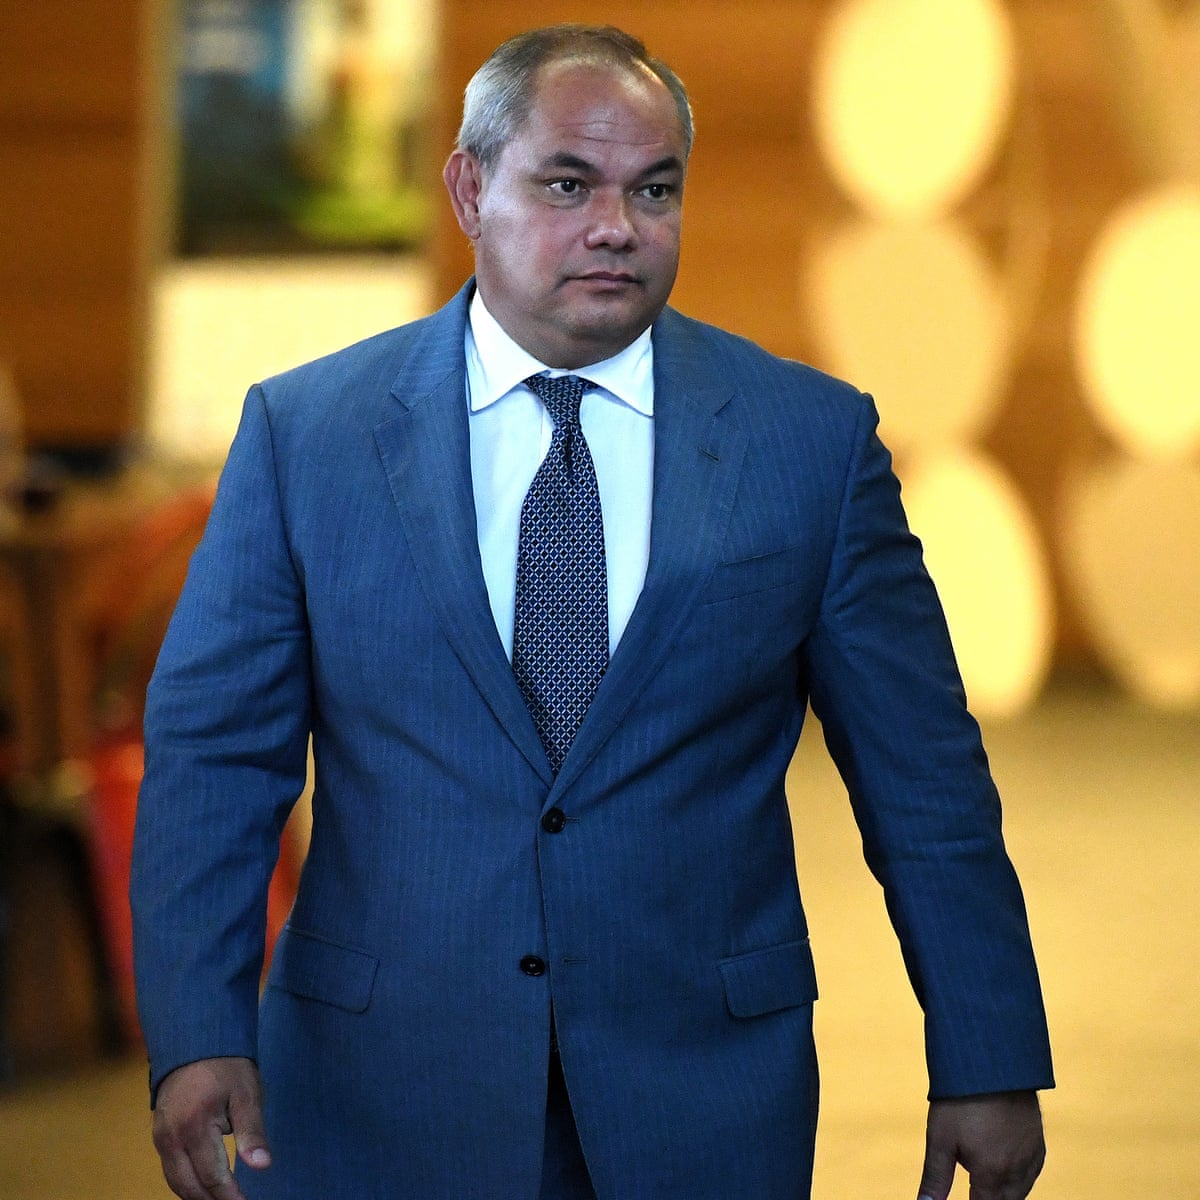 Gold Coast mayor Tom Tate could face misconduct proceedings after ...